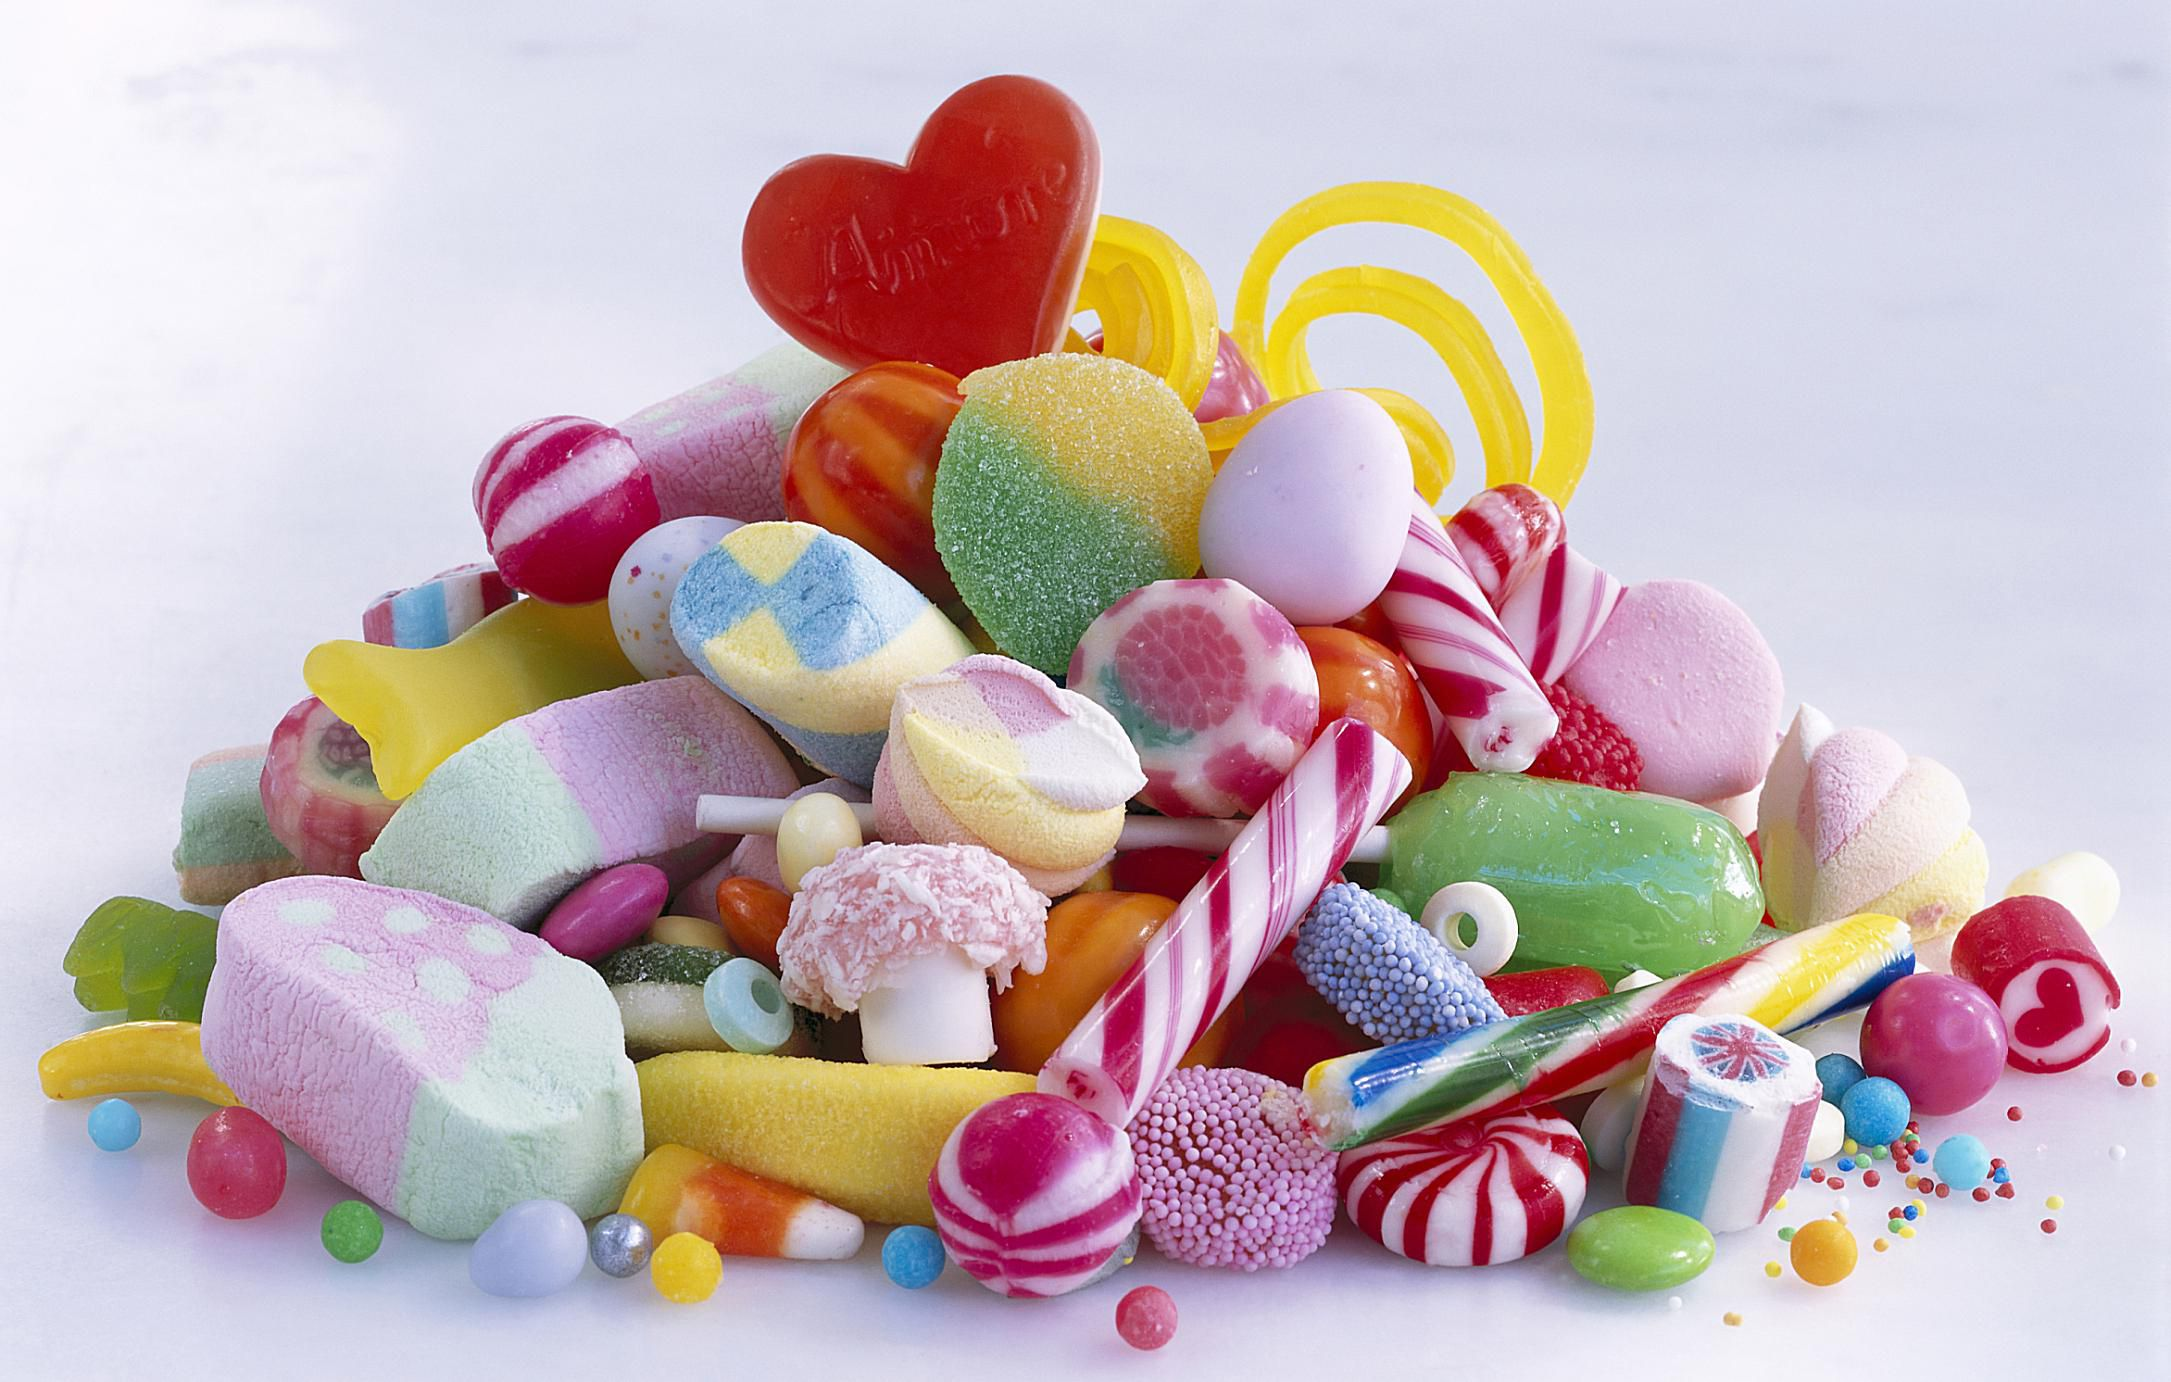 Candy Making Basics (A Beginners Guide)